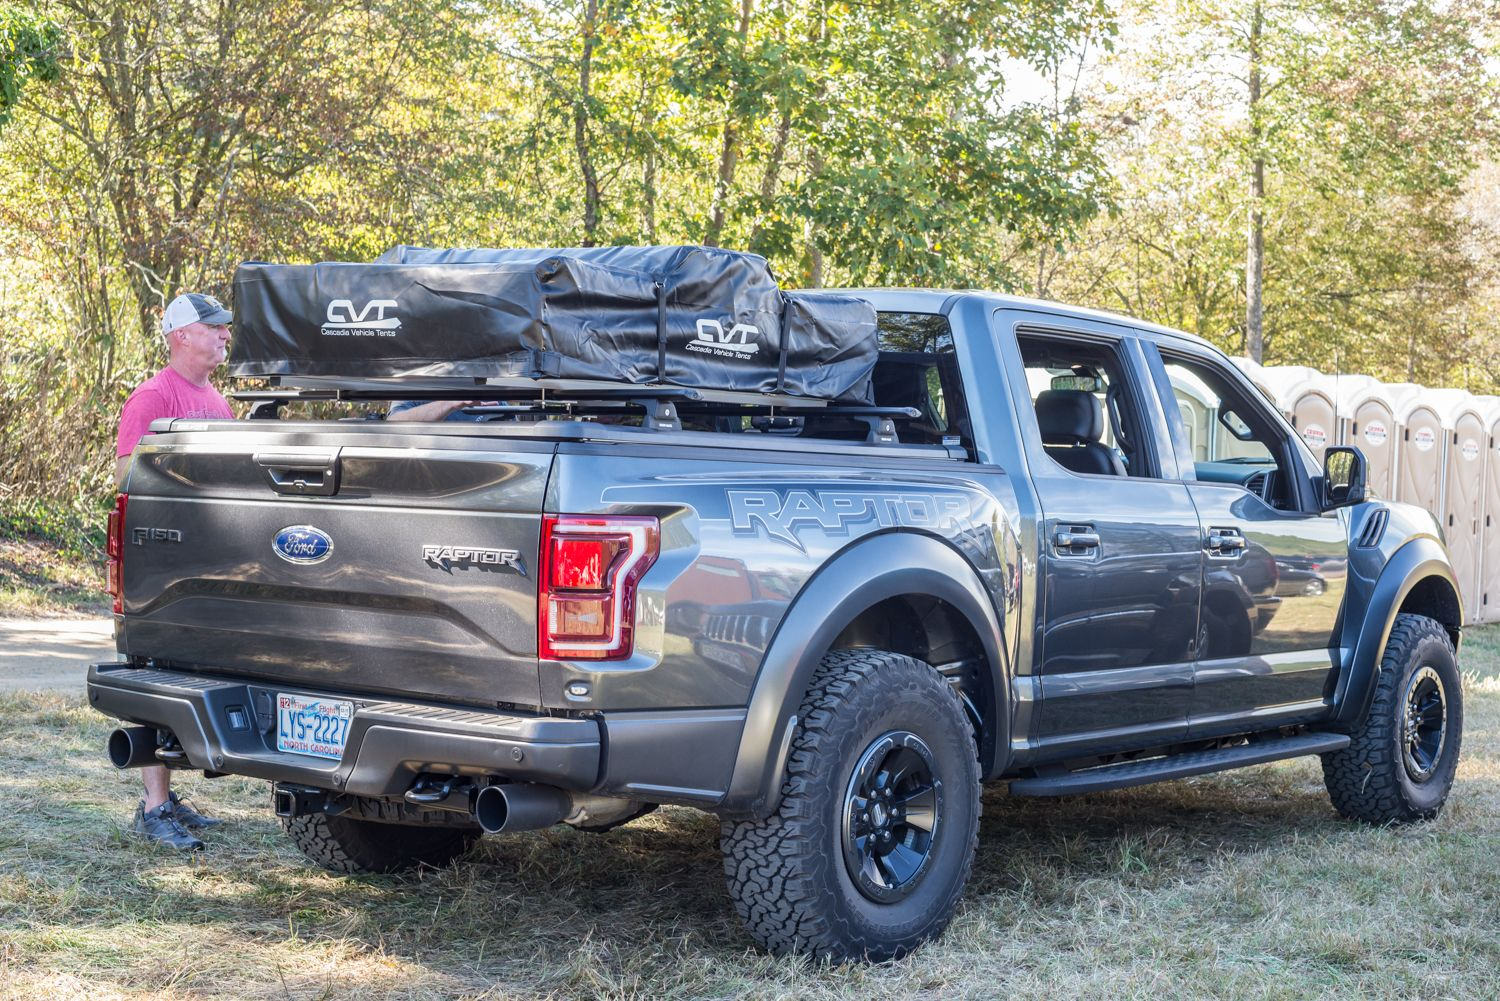 Drive Camp Anywhere Top Vehicles From Overland Expo Vehicles Ford Trucks Off Road Wheels